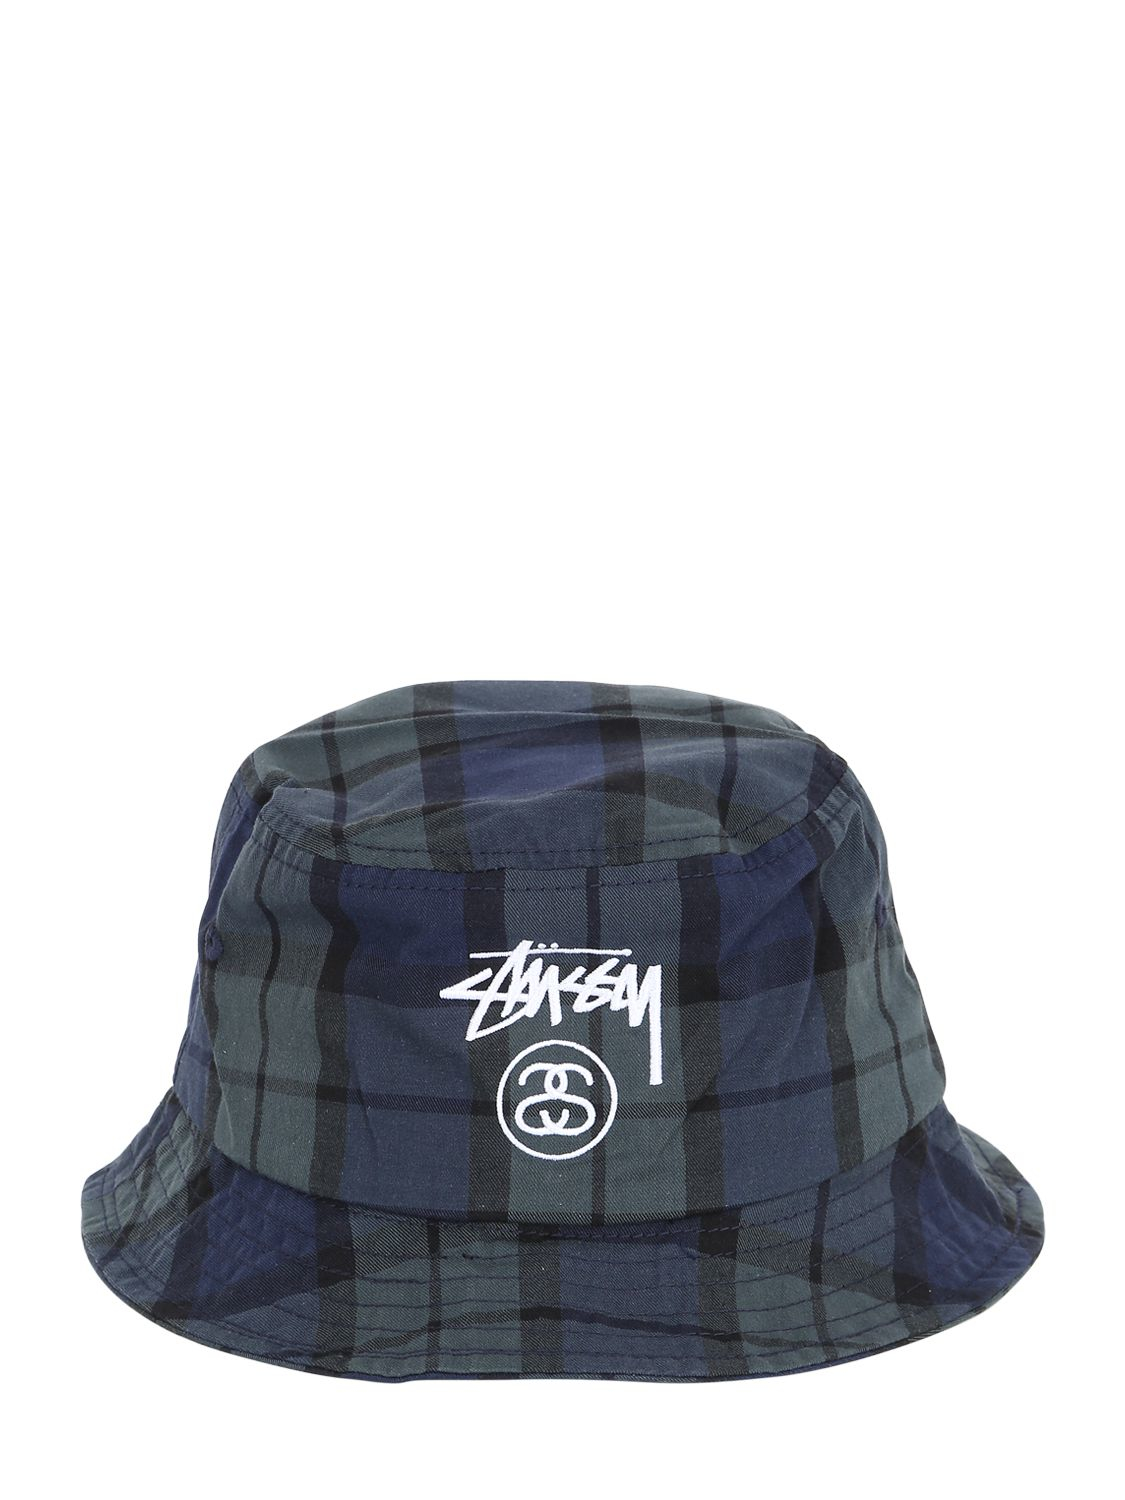 stussy bucket hat navy - HD 1125×1500